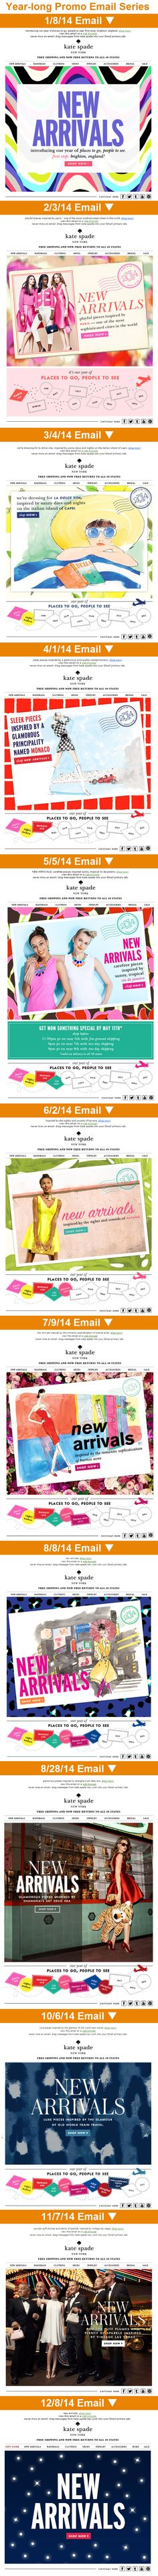 "Kate Spade >> sent monthly during 2014 >> new arrivals >> When most email marketing campaigns are decidedly short-term, Kate Spade's year-long ""Places to Go, People to See"" campaign really stands out. Each email focuses on new clothing arrivals inspired by different locales, and the banner at the bottom of the email ties them all together. —Anna Meier, Manager, East Creative Services, Salesforce Marketing Cloud"